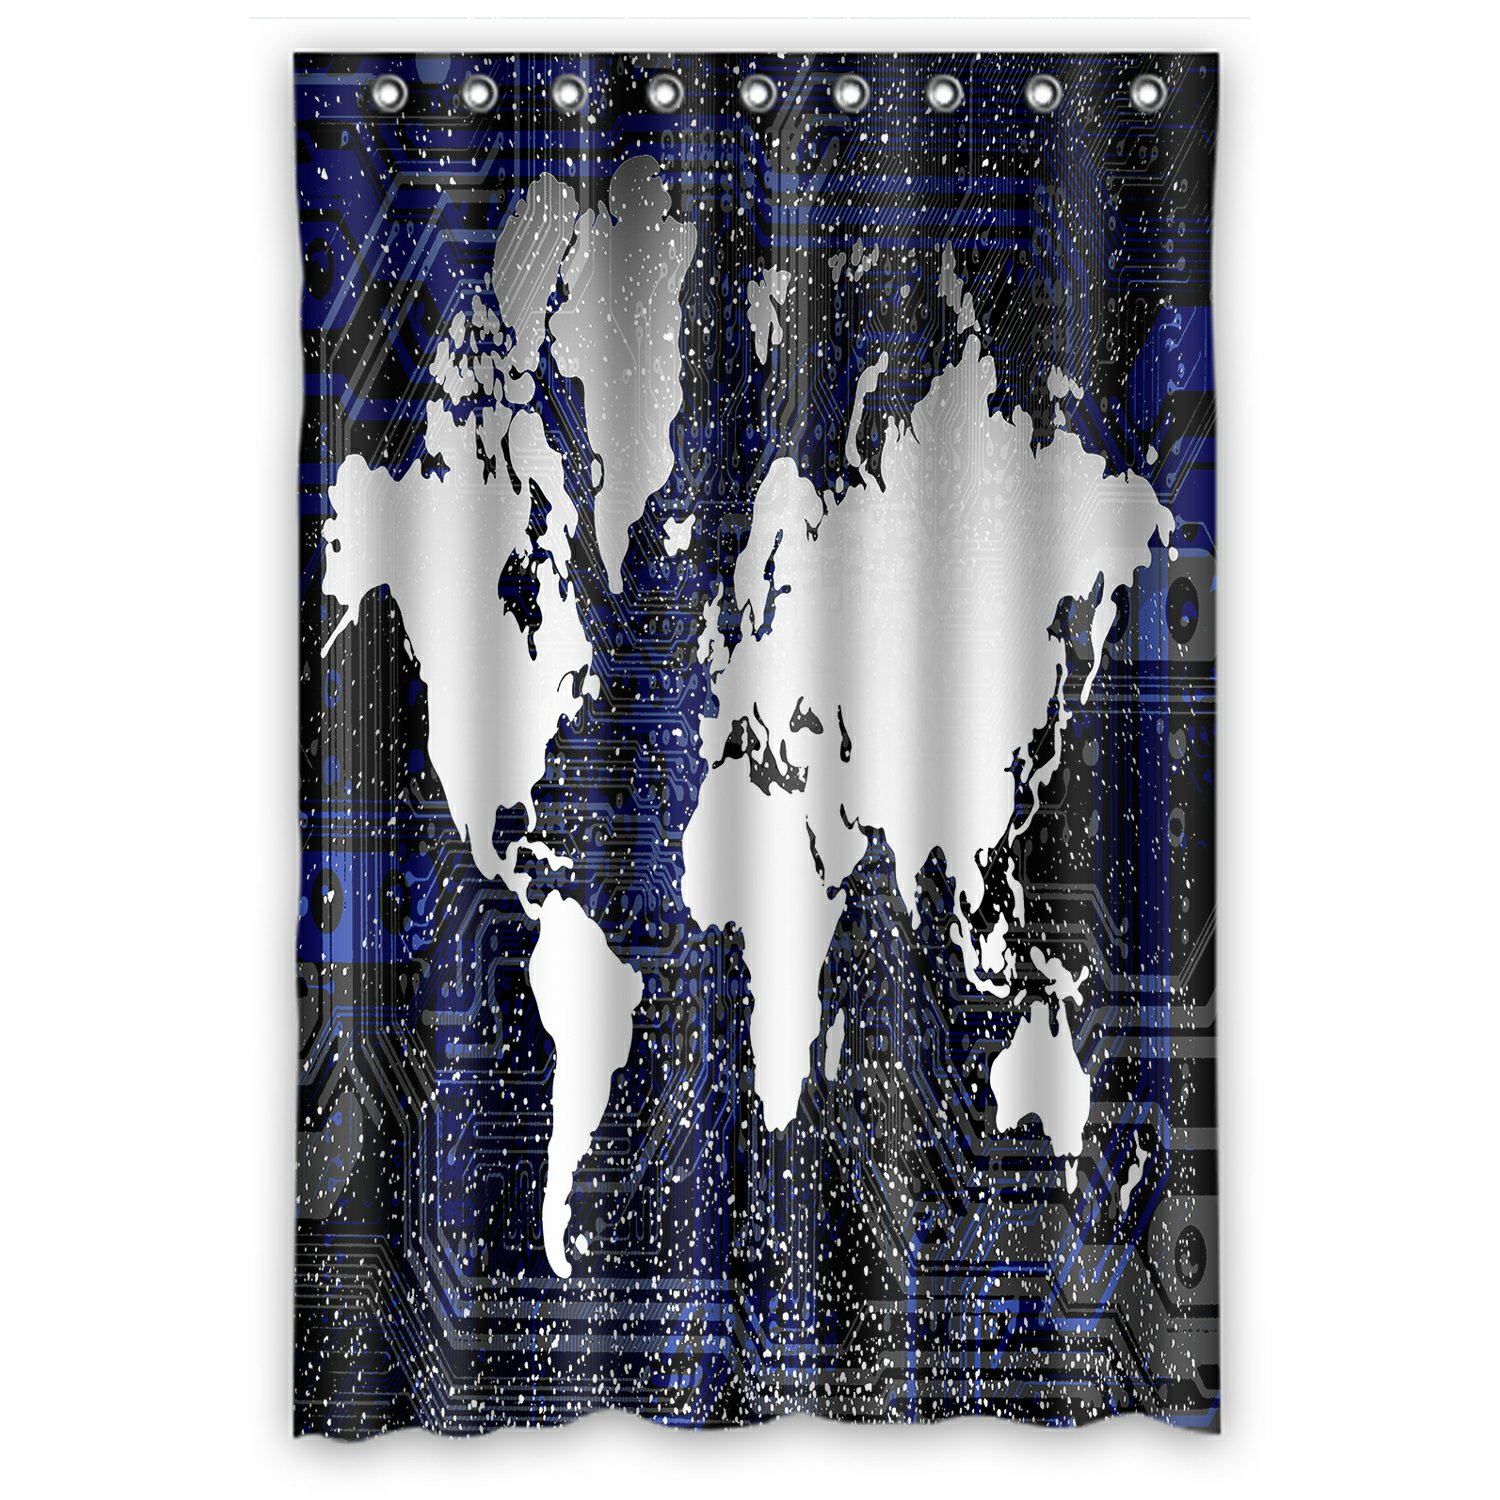 Phfzk Earth Shower Curtain World Map Polyester Fabric Bathroom Shower Curtain 48x72 Inches